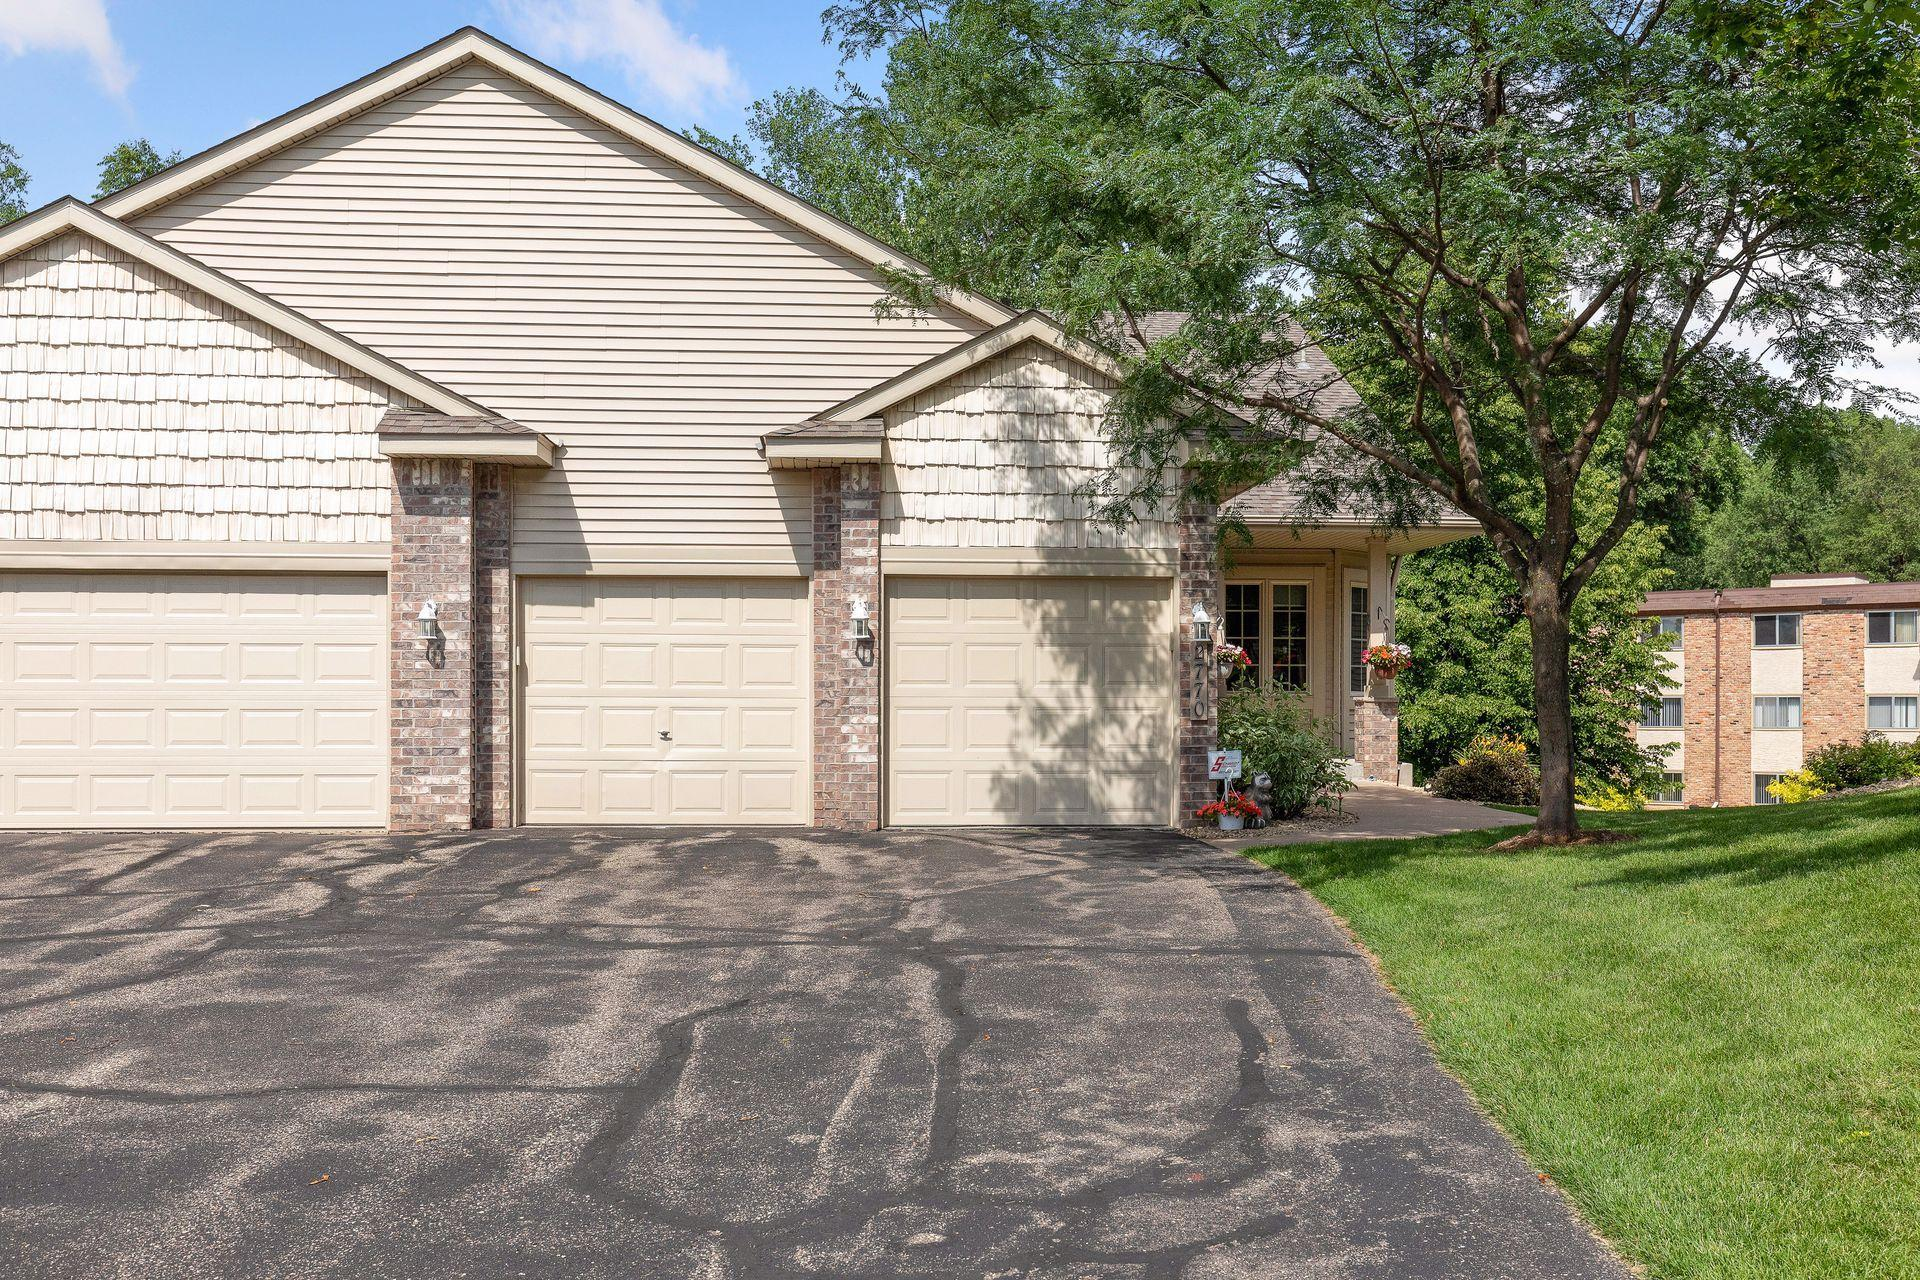 2770 Park View Property Photo - Little Canada, MN real estate listing